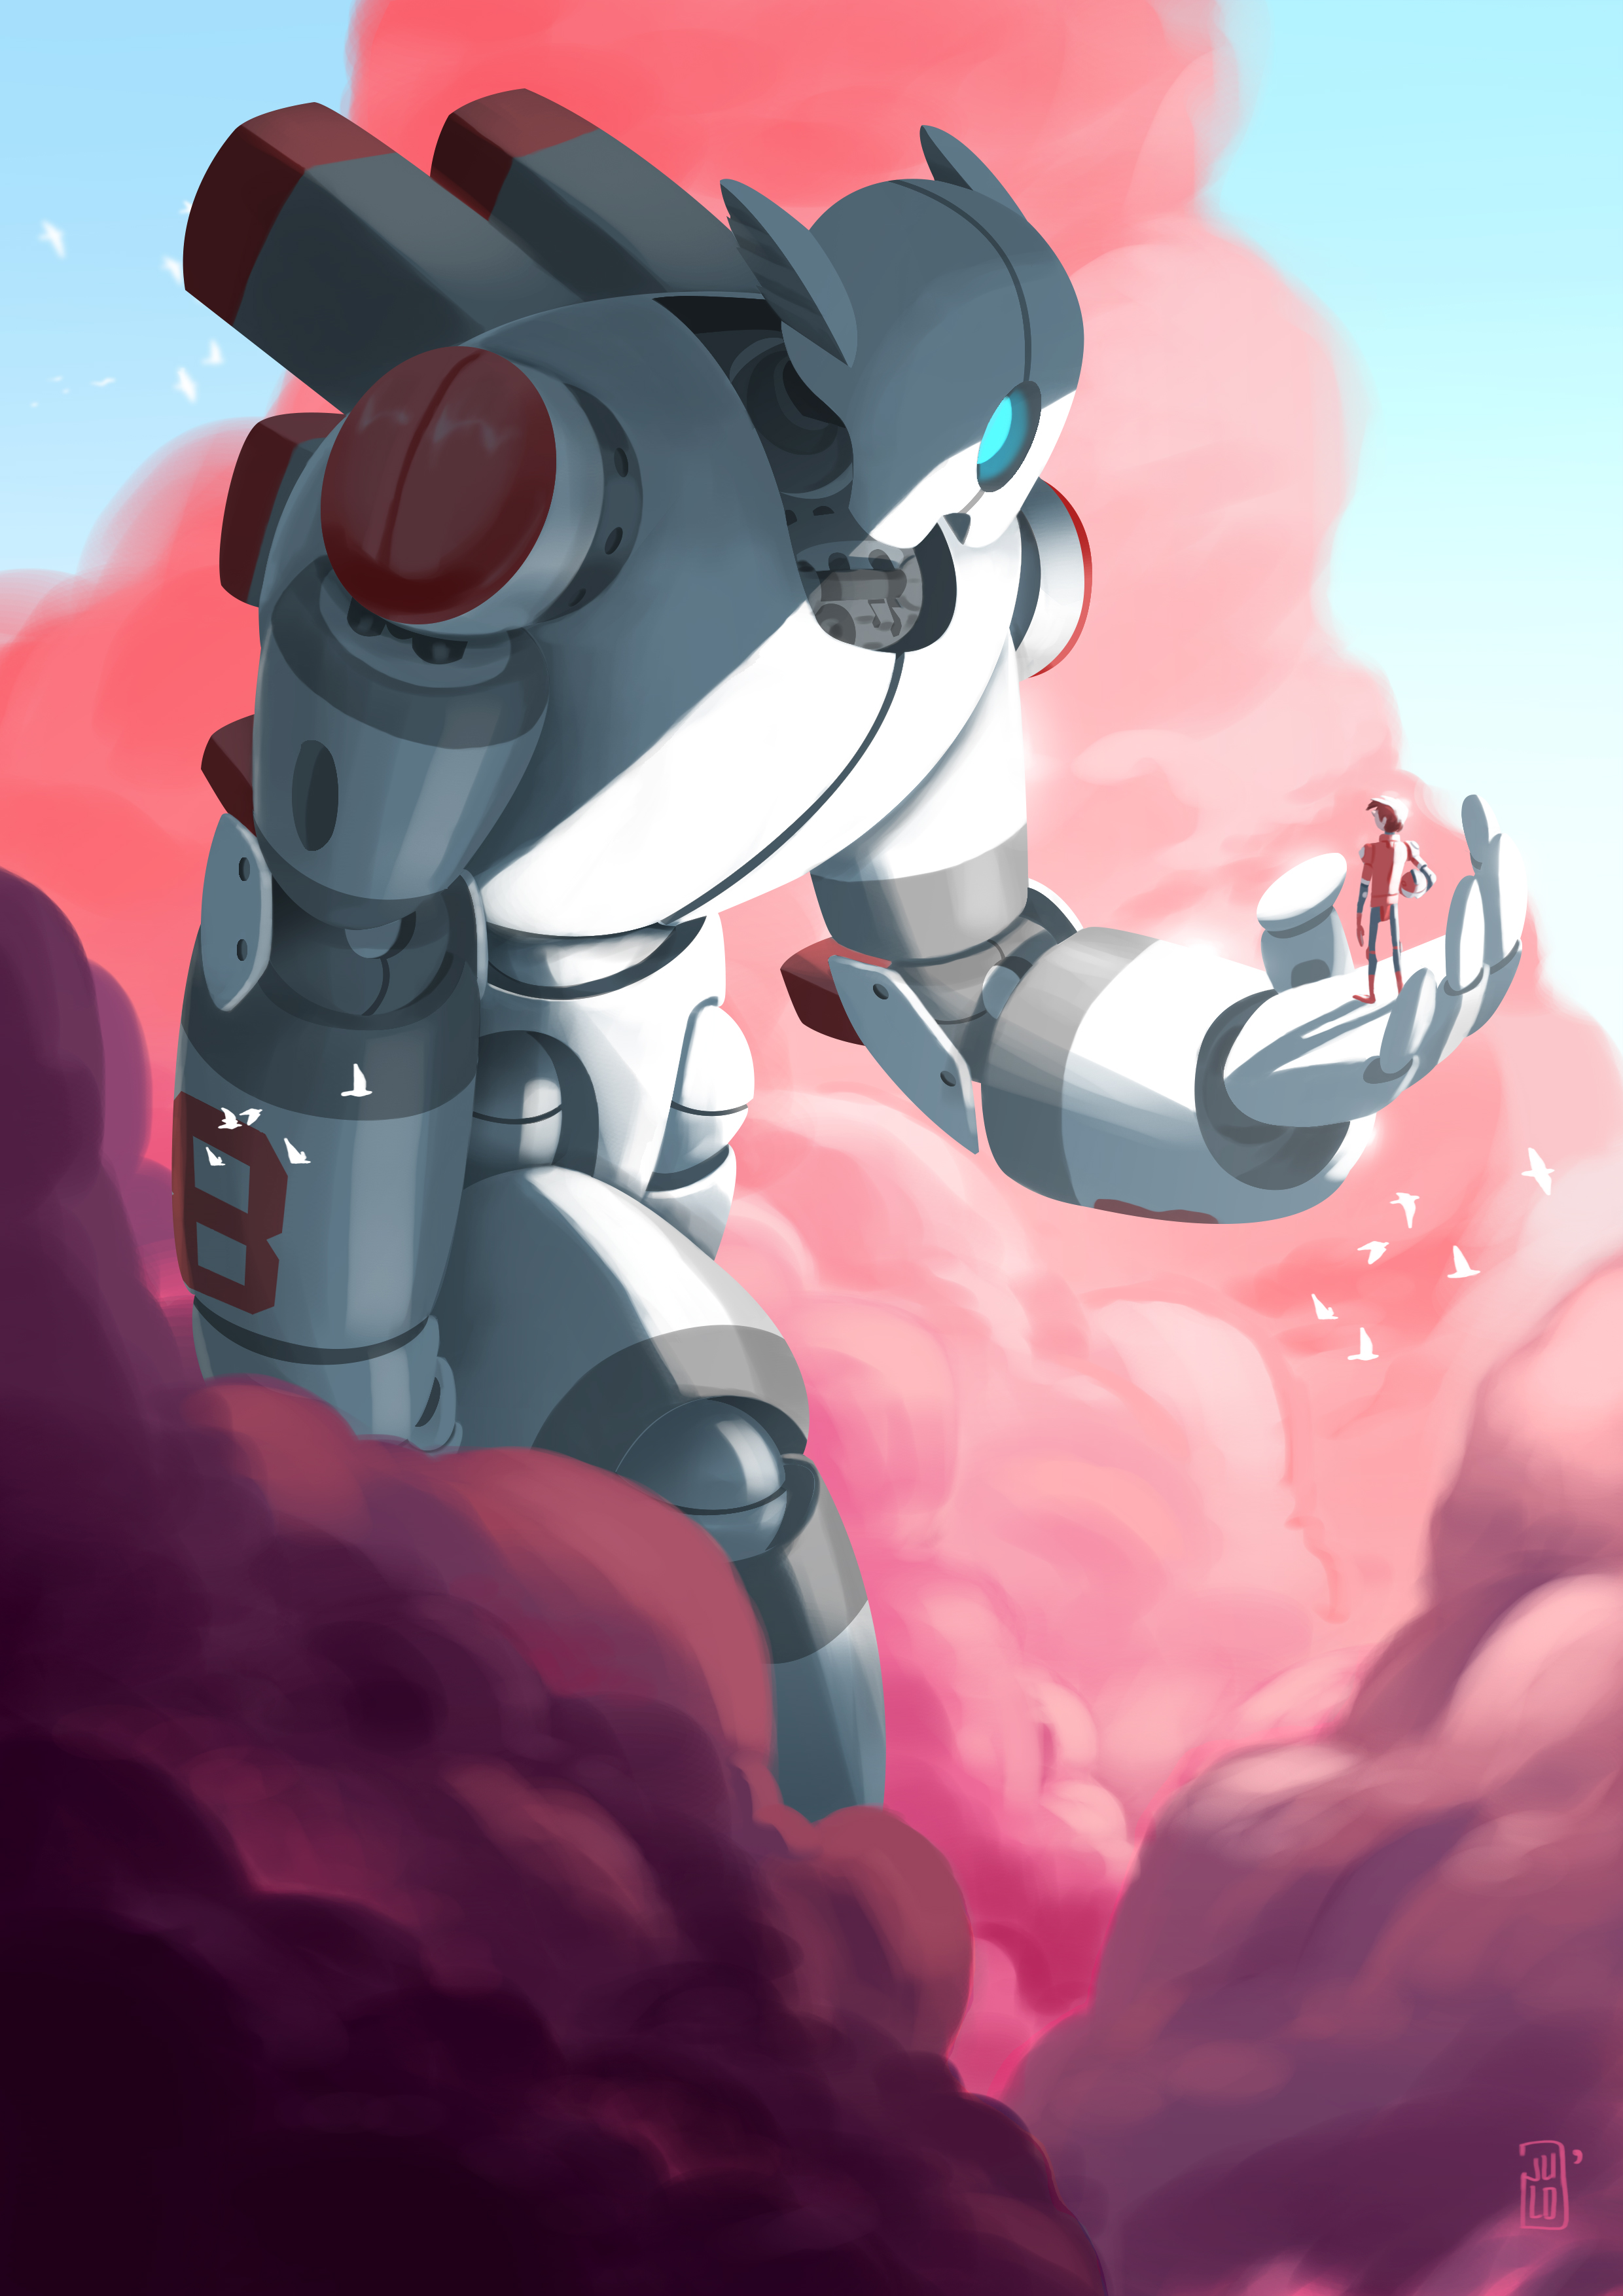 Cloud Robot